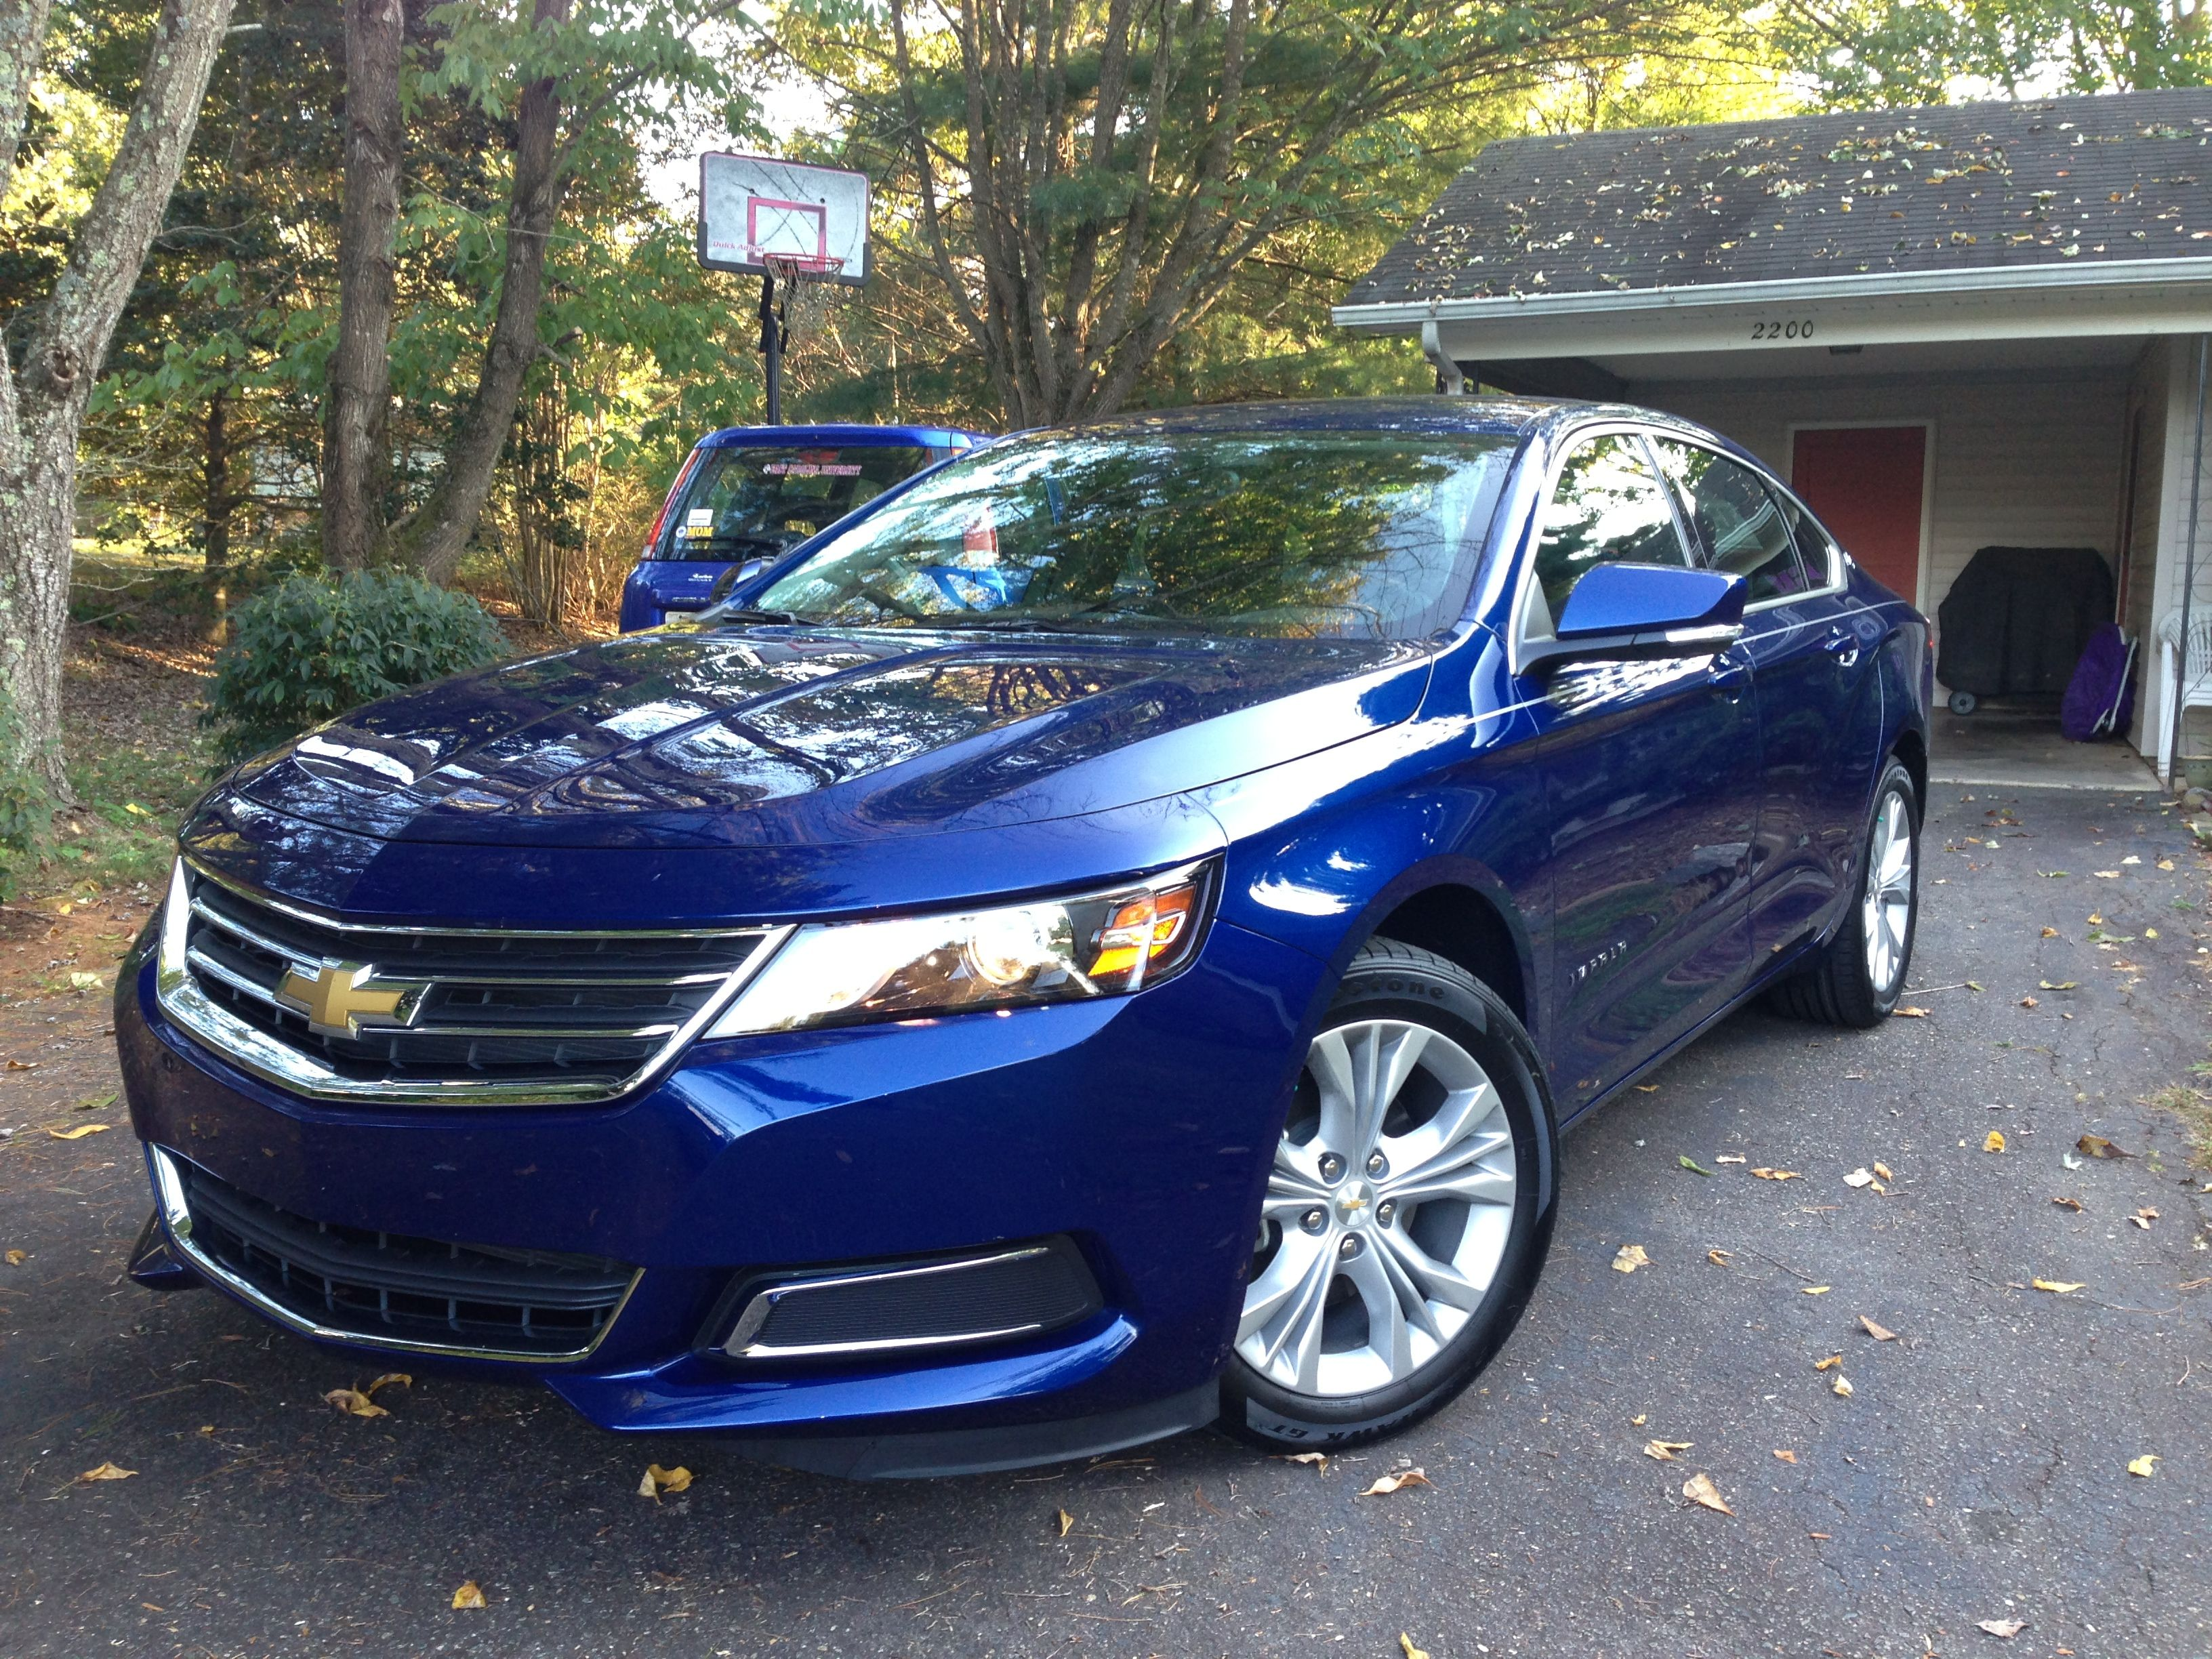 2014 Chevy Impala Lt I Ve Never Owned A Blue Car Before Love